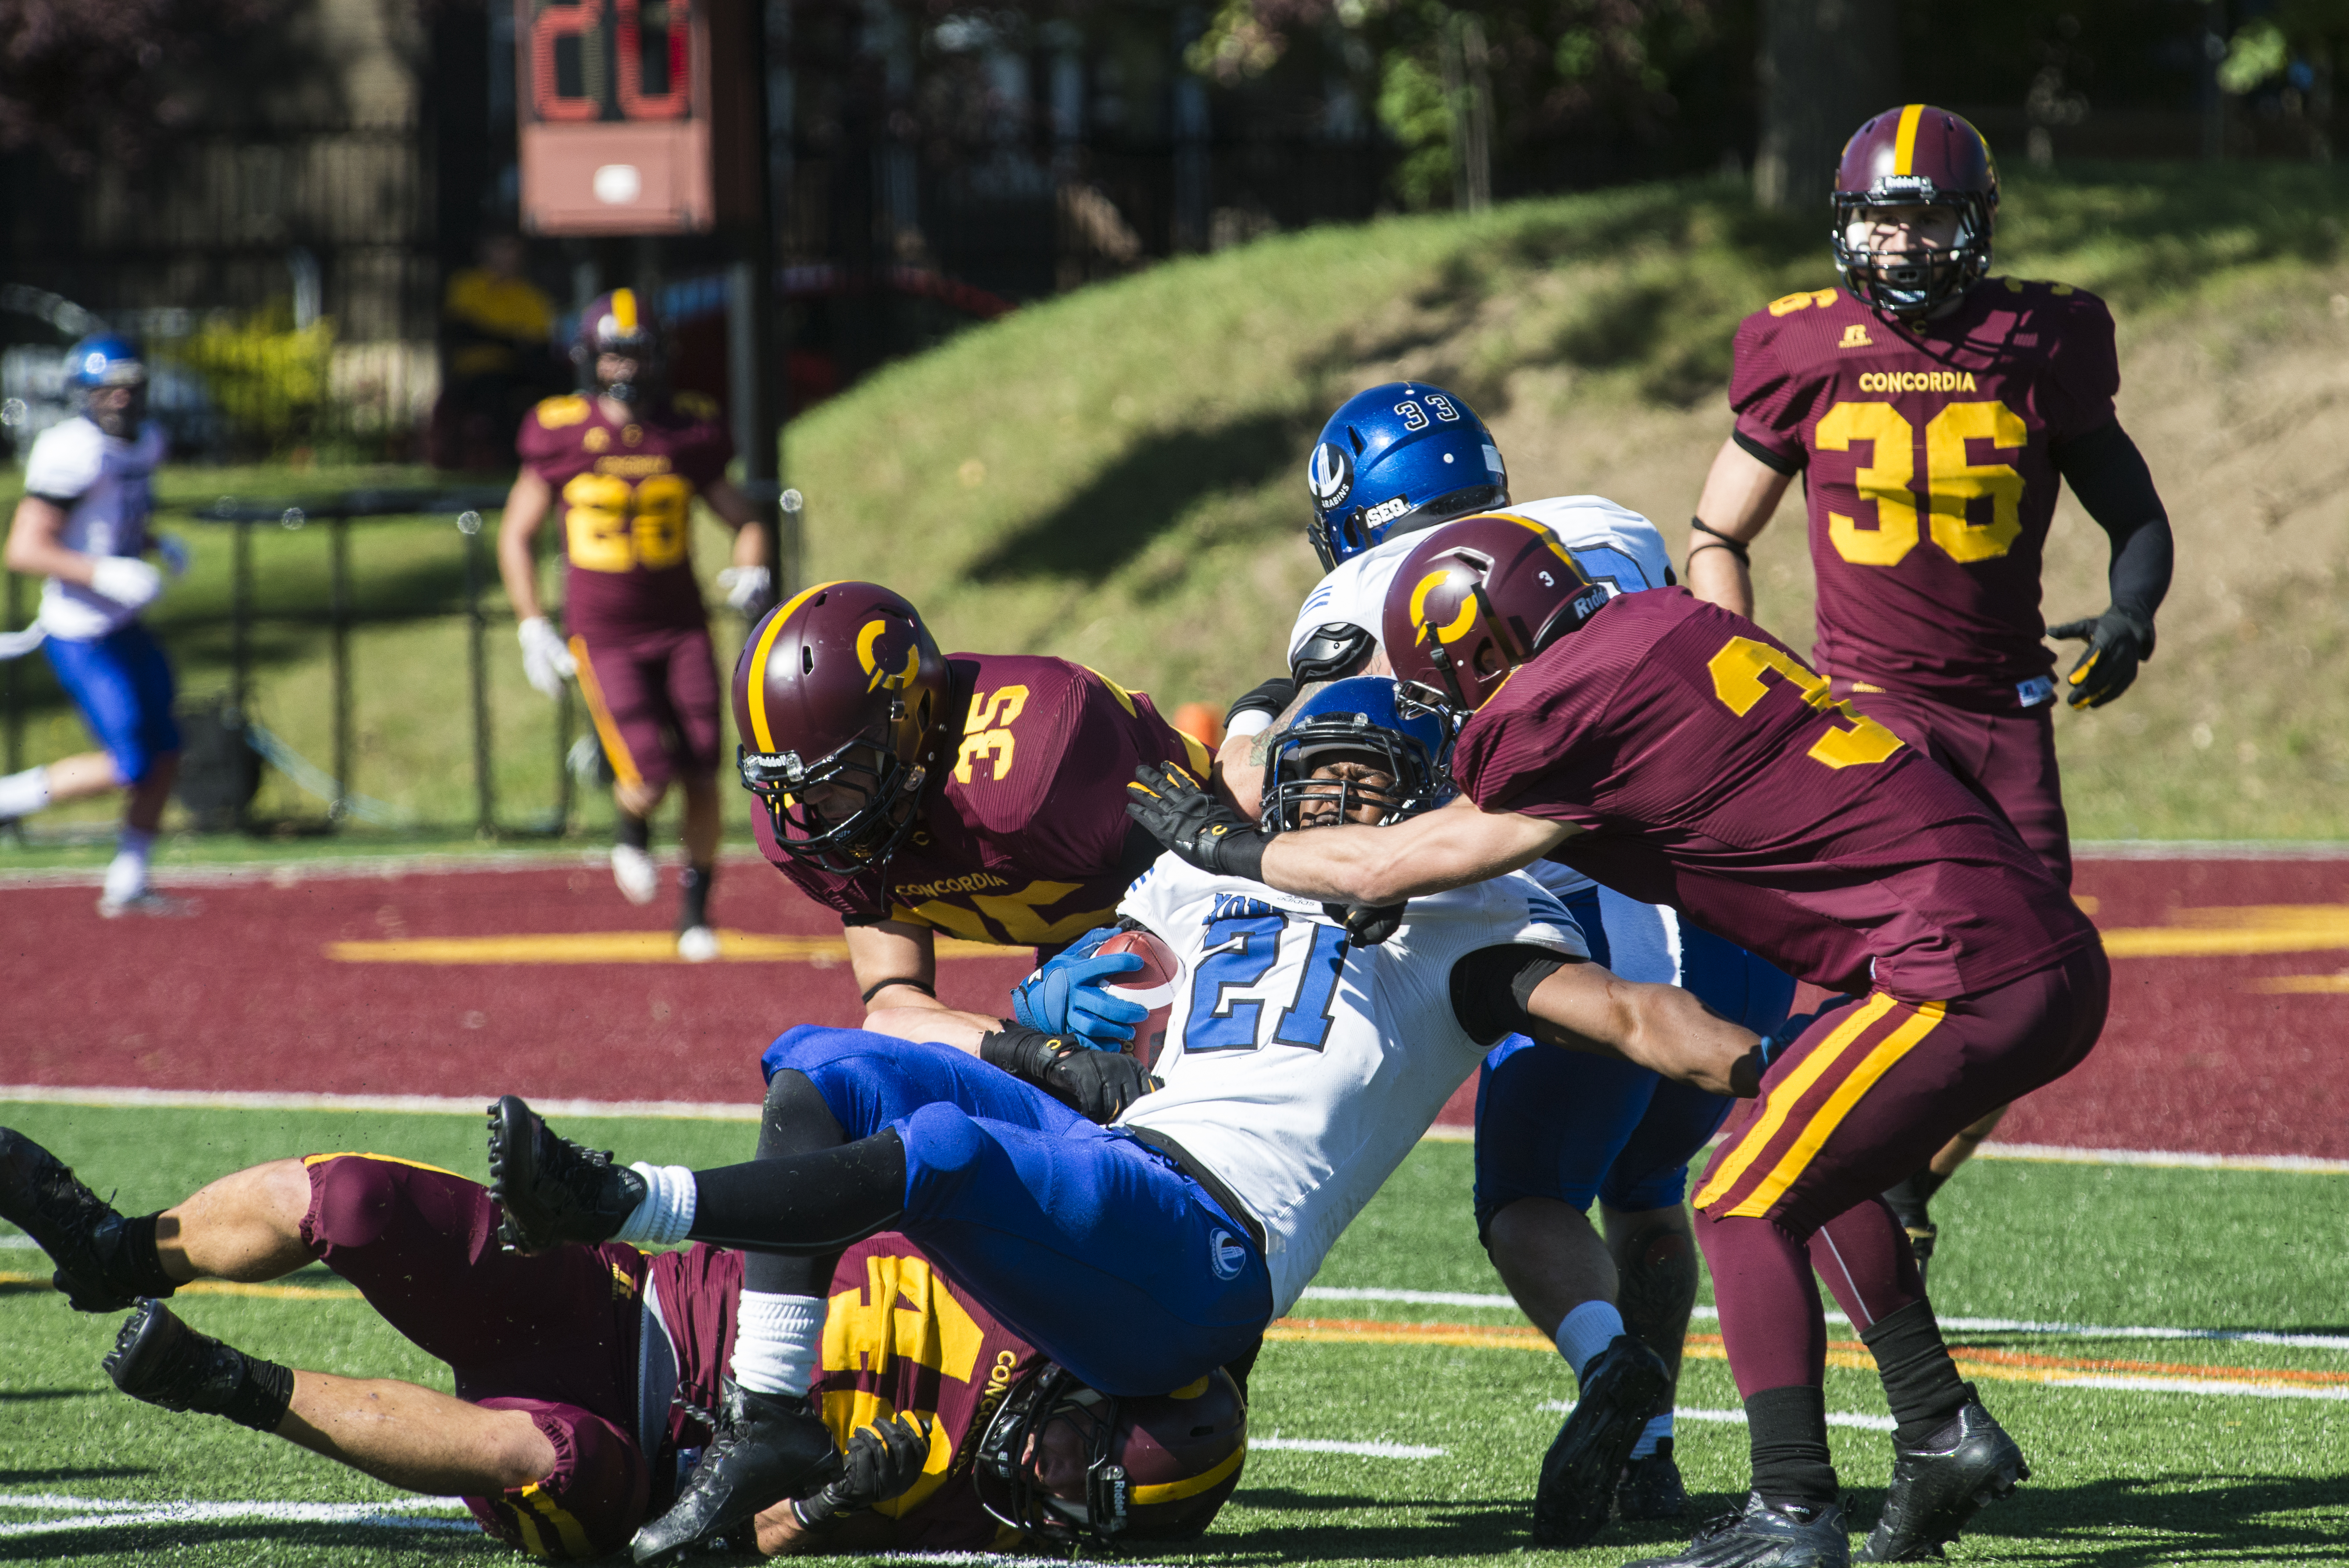 The Stingers hope to defeat teams like the Carabins next season. Photo by Andrej Ivanov.